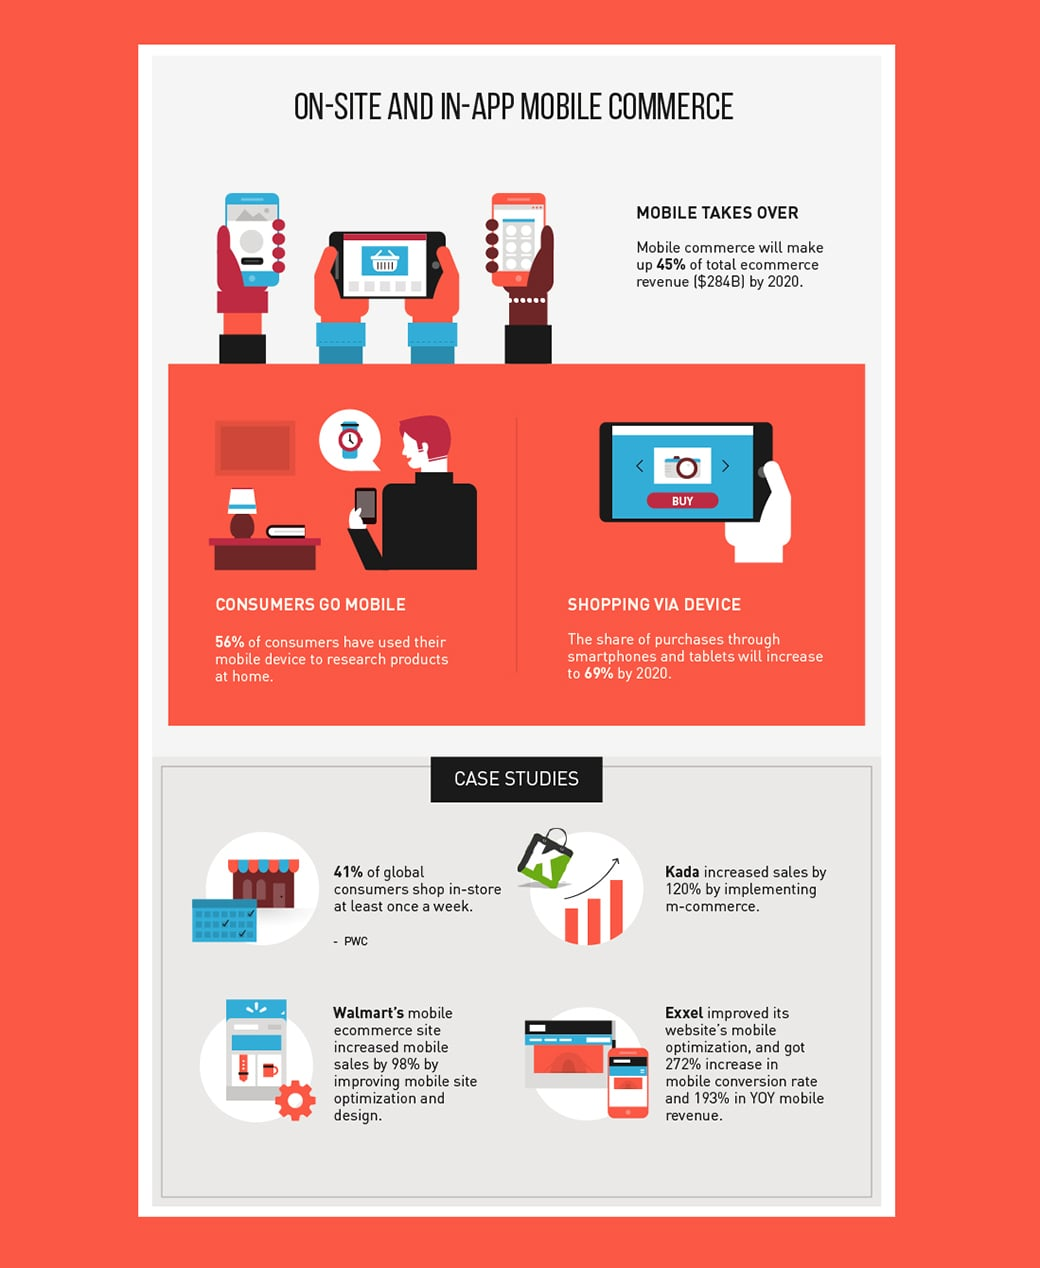 mobile ecommerce in the future